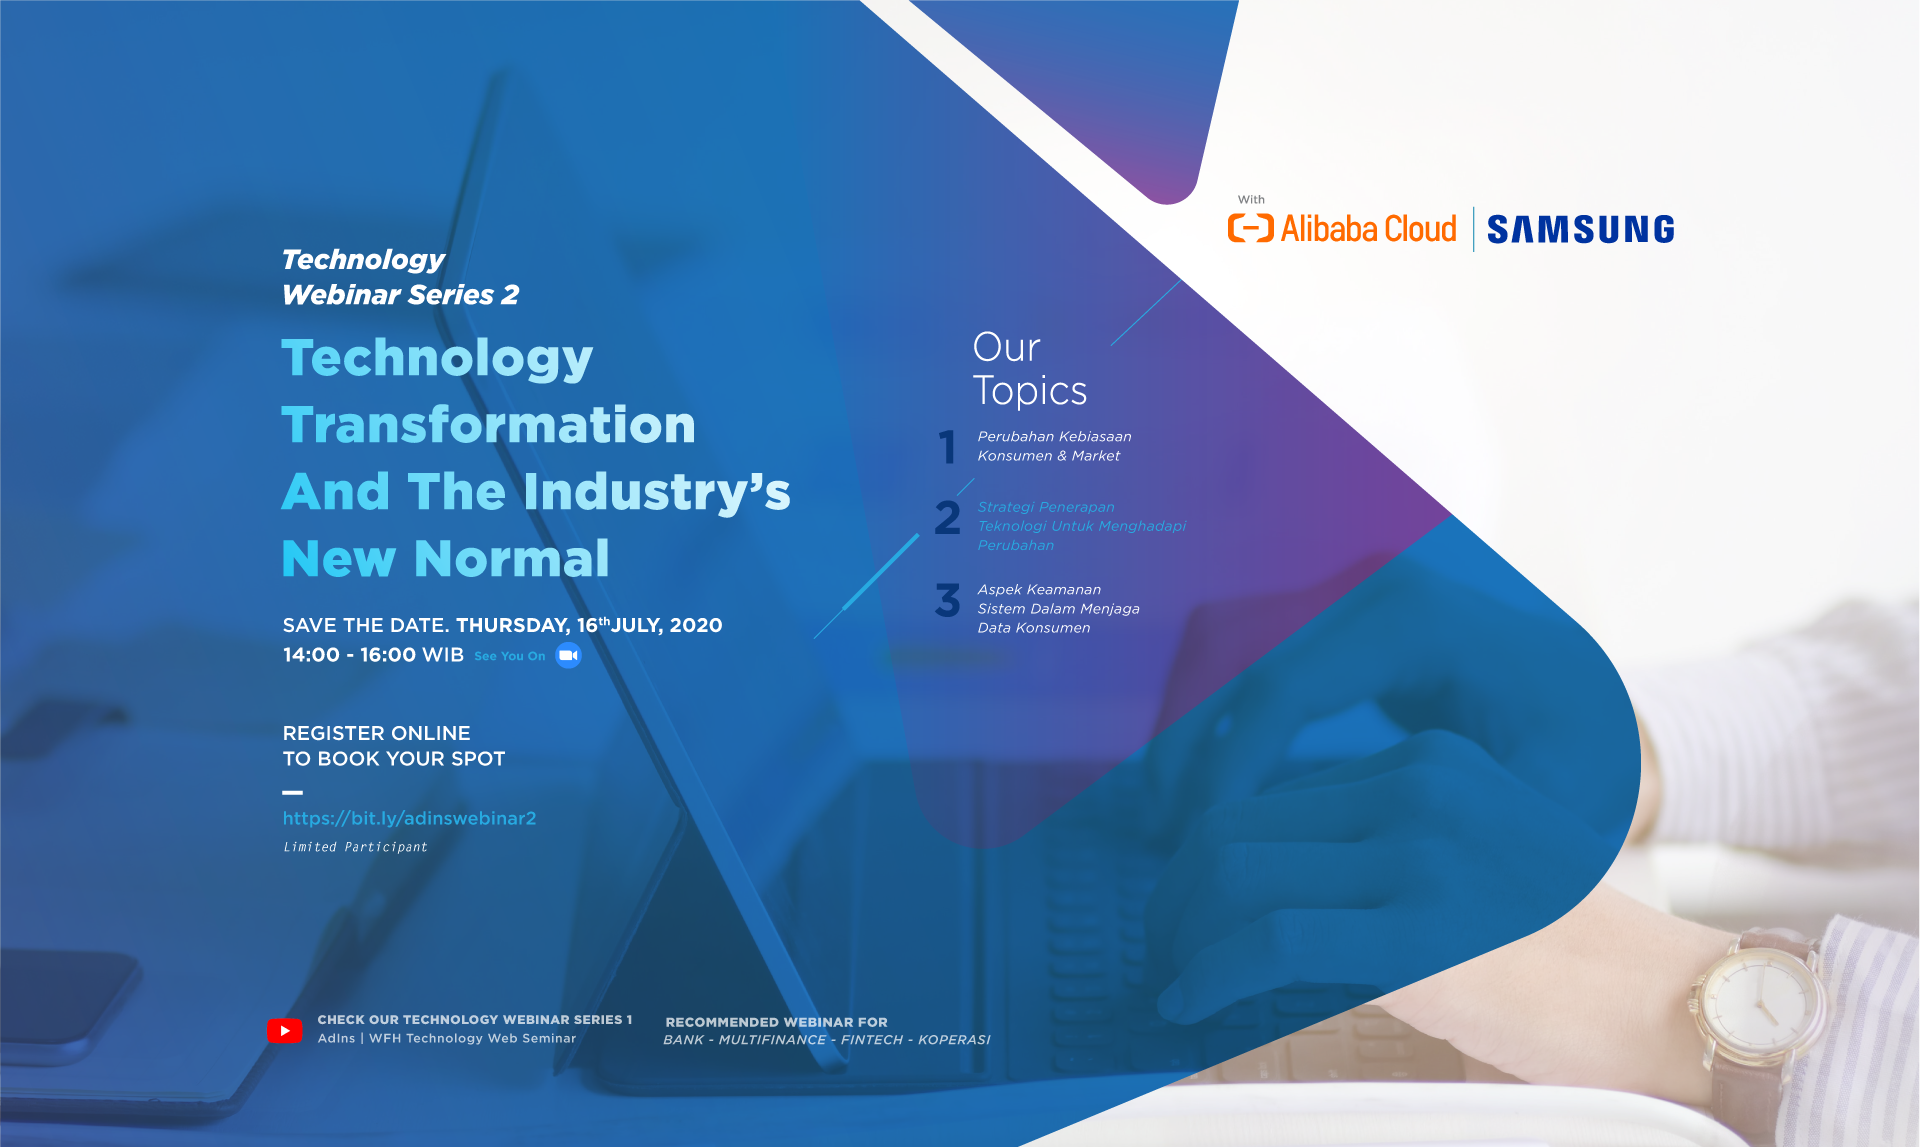 AdIns Technology Webinar Series 2: Technology Transformation And The Industry's New Normal